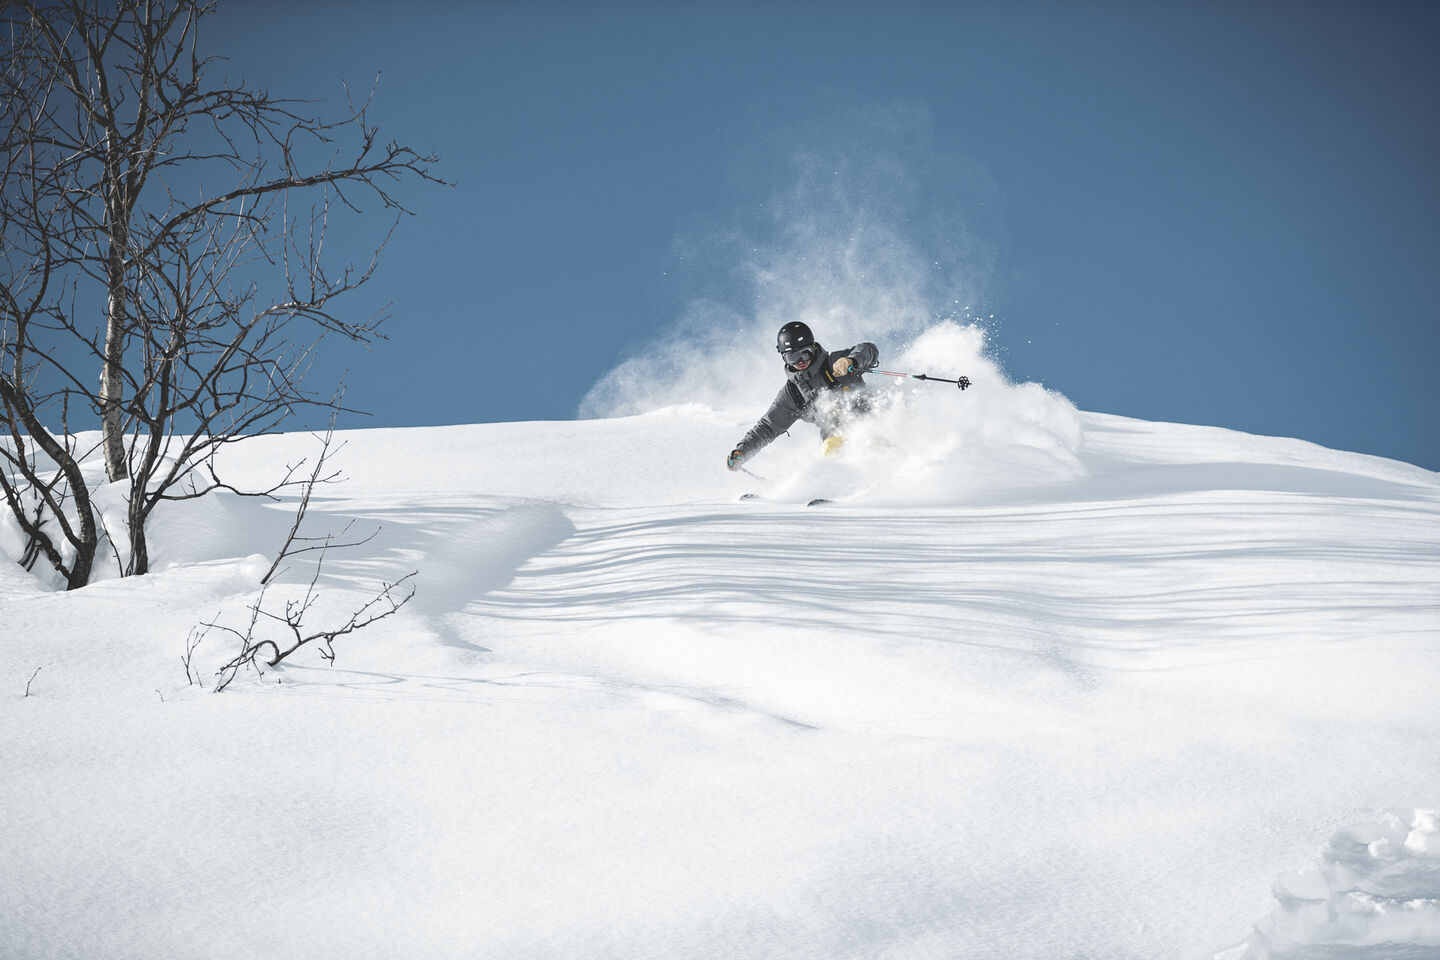 Male skier slashing fresh powder on a bluebird day